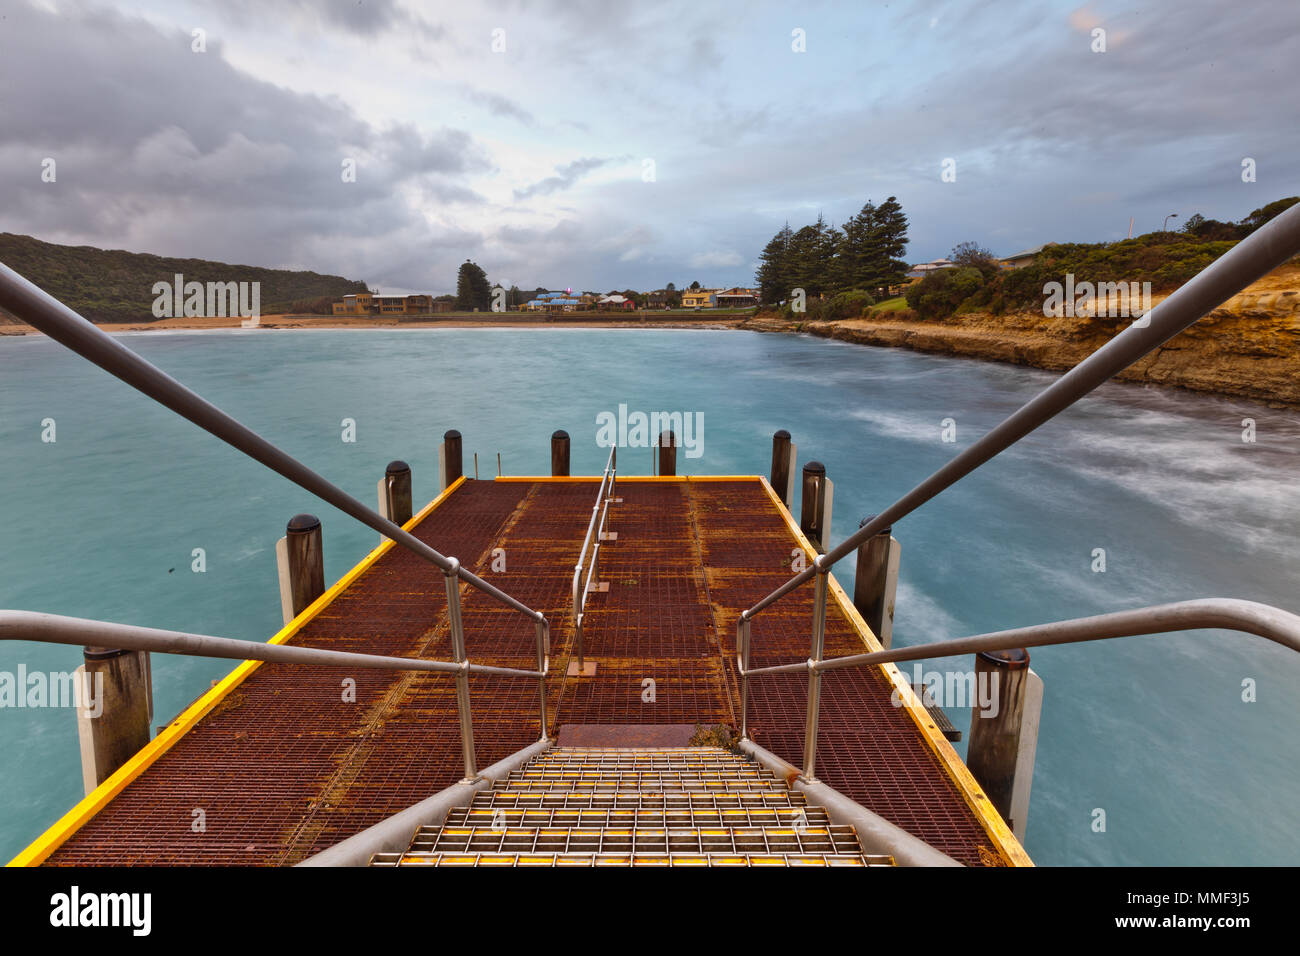 The Port Campbell jetty bridge wharf on the Great Ocean Road on 3rd May 2012 - Stock Image